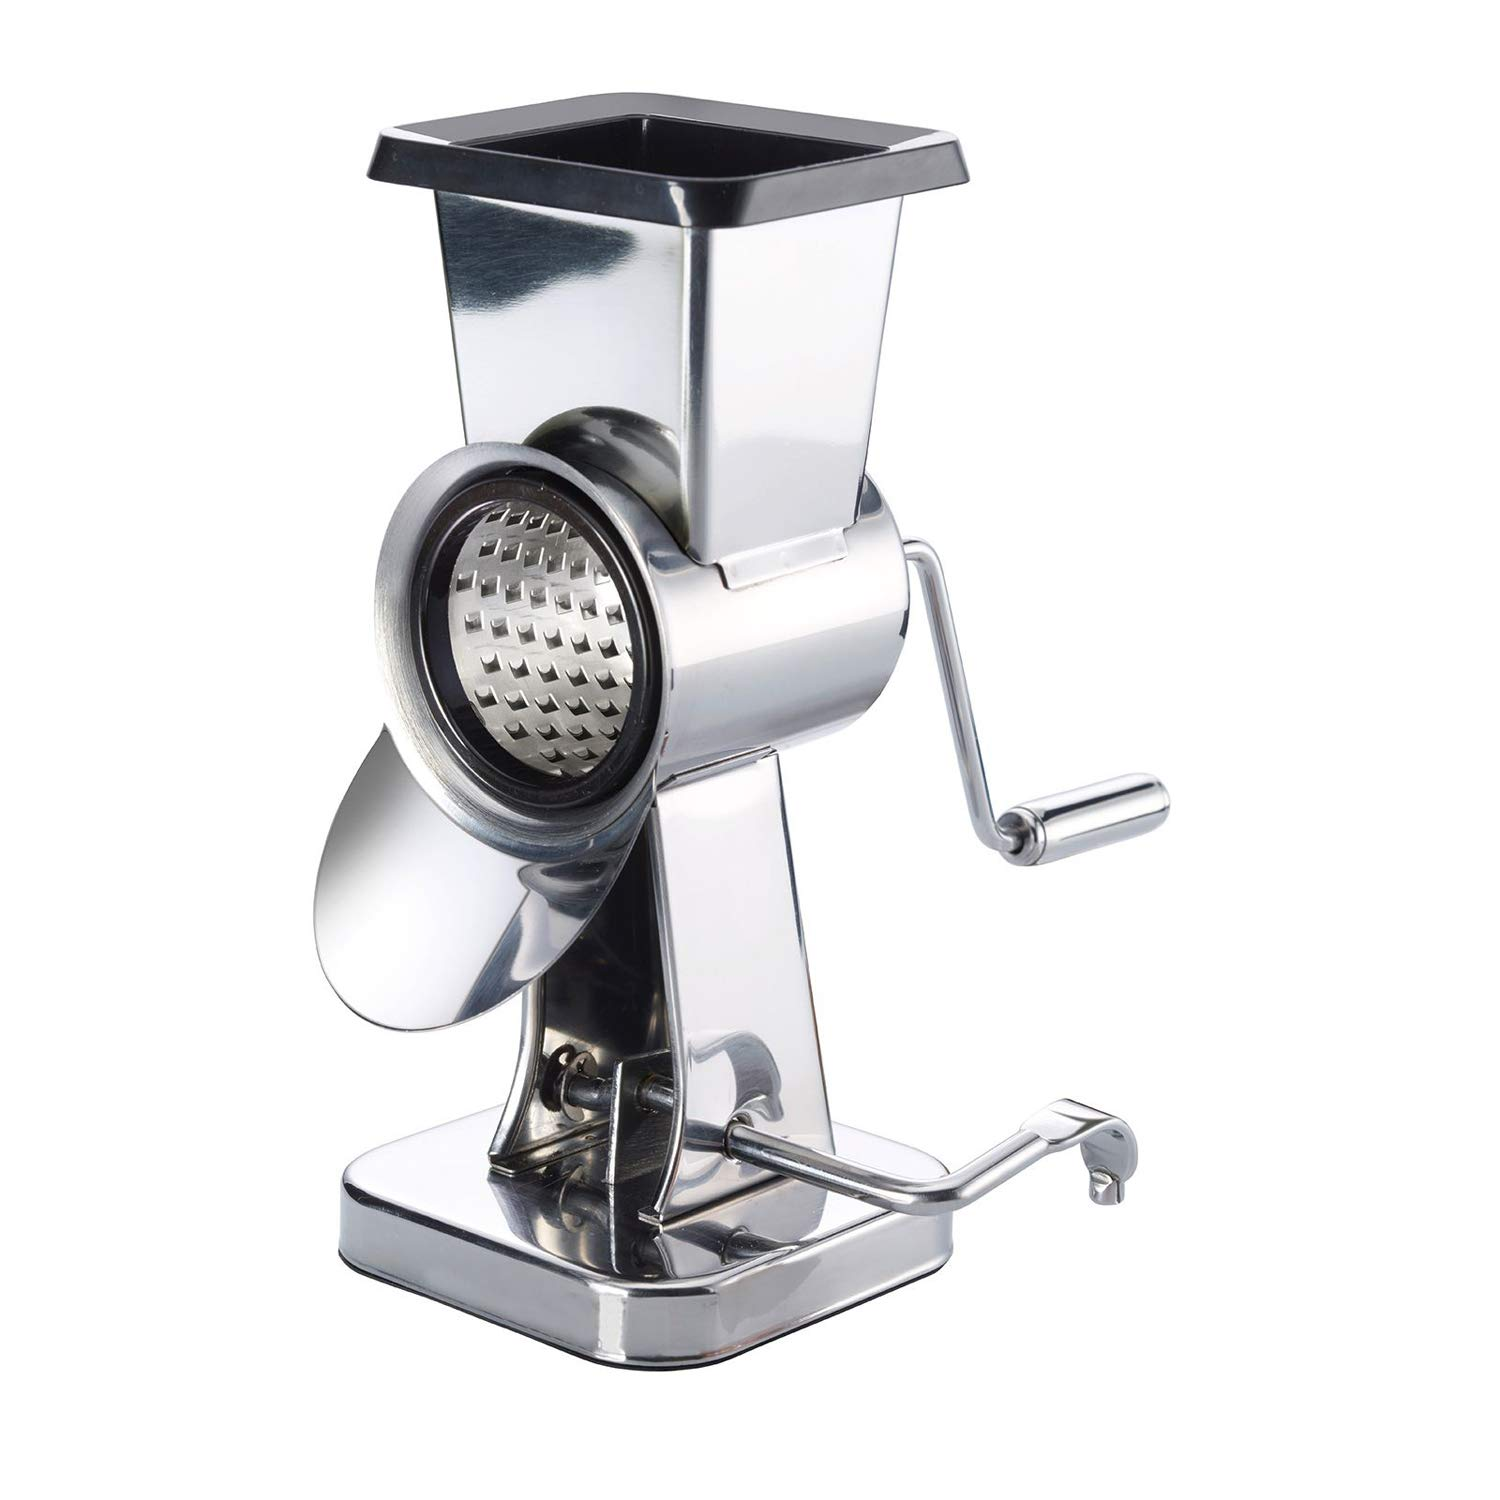 Westmark 97172260 Grinder for Almonds, Works for Nuts Chocolate and Cheese